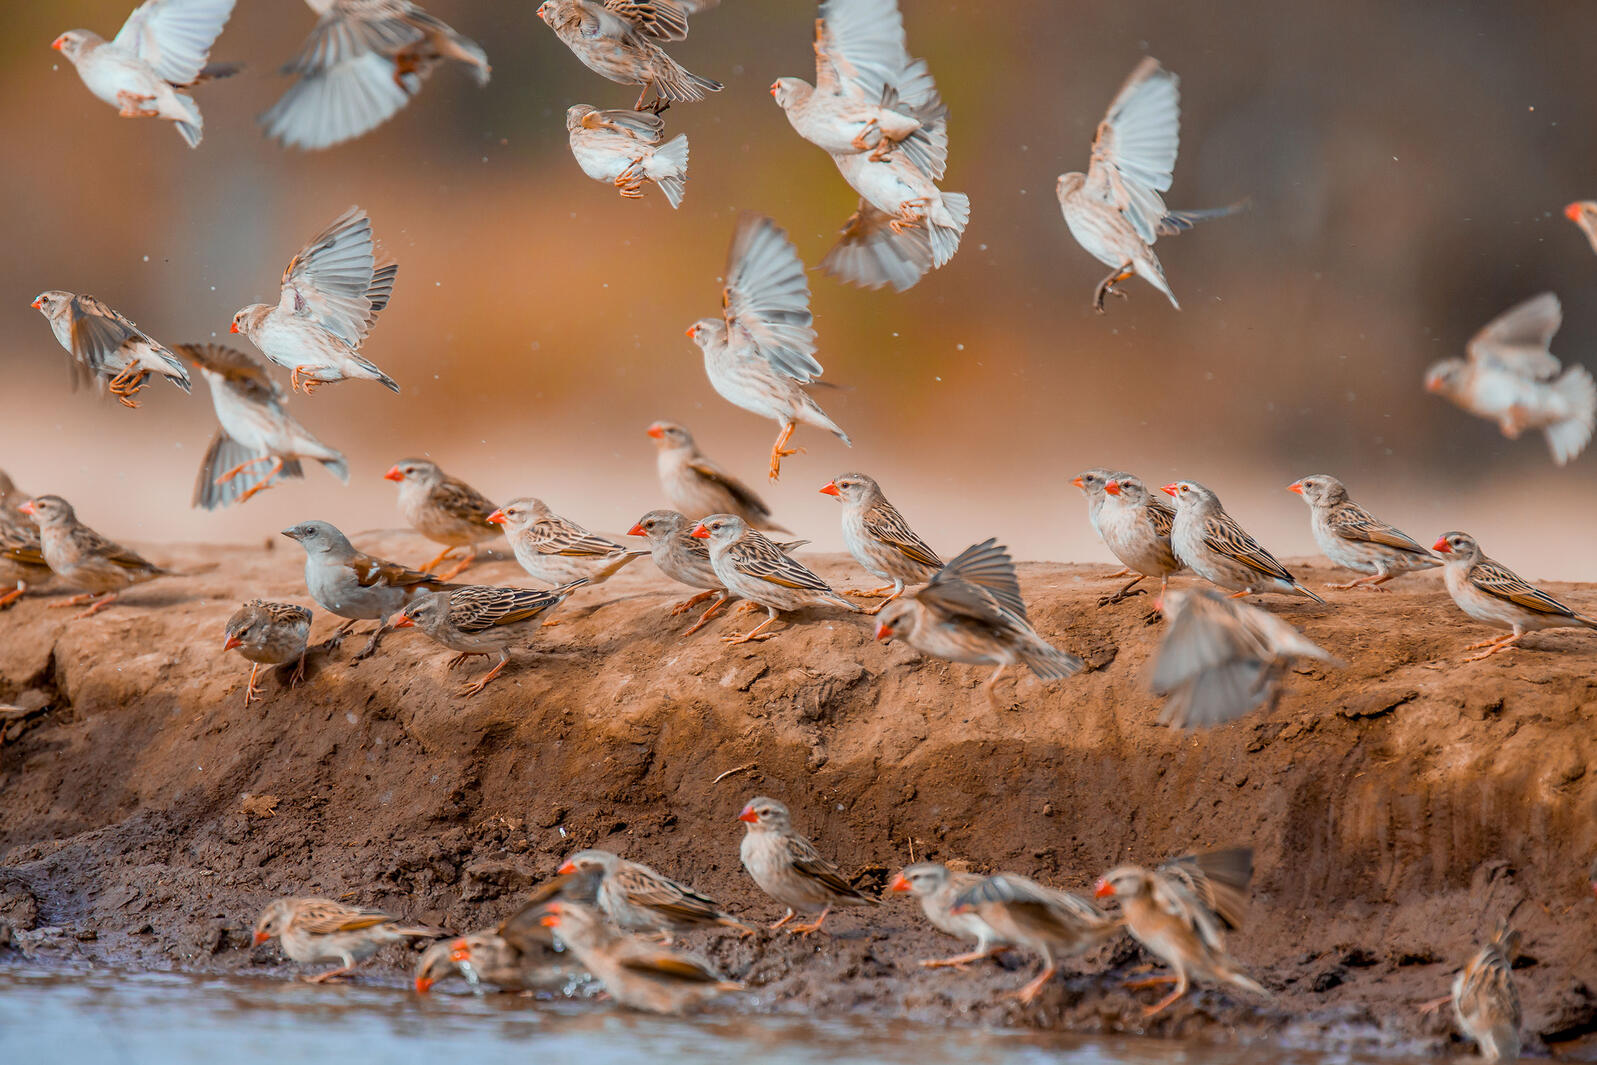 Red-billed Quelea and Southern Gray-headed Sparrow. Ali Dhanji/Audubon Photography Awards